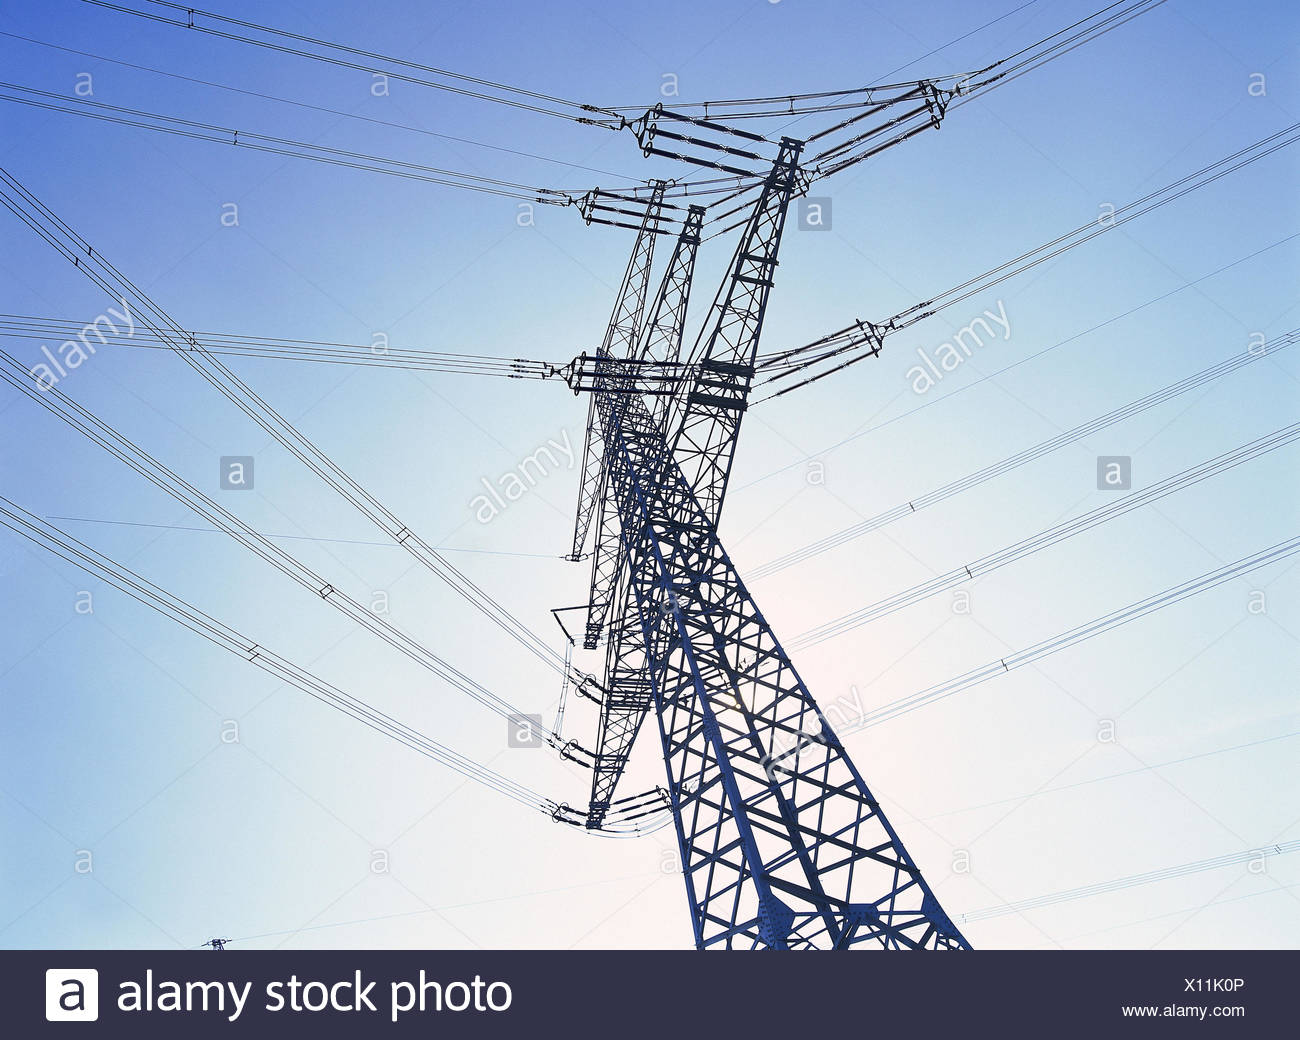 High Voltage Poles Power Supply Lines Energy Current